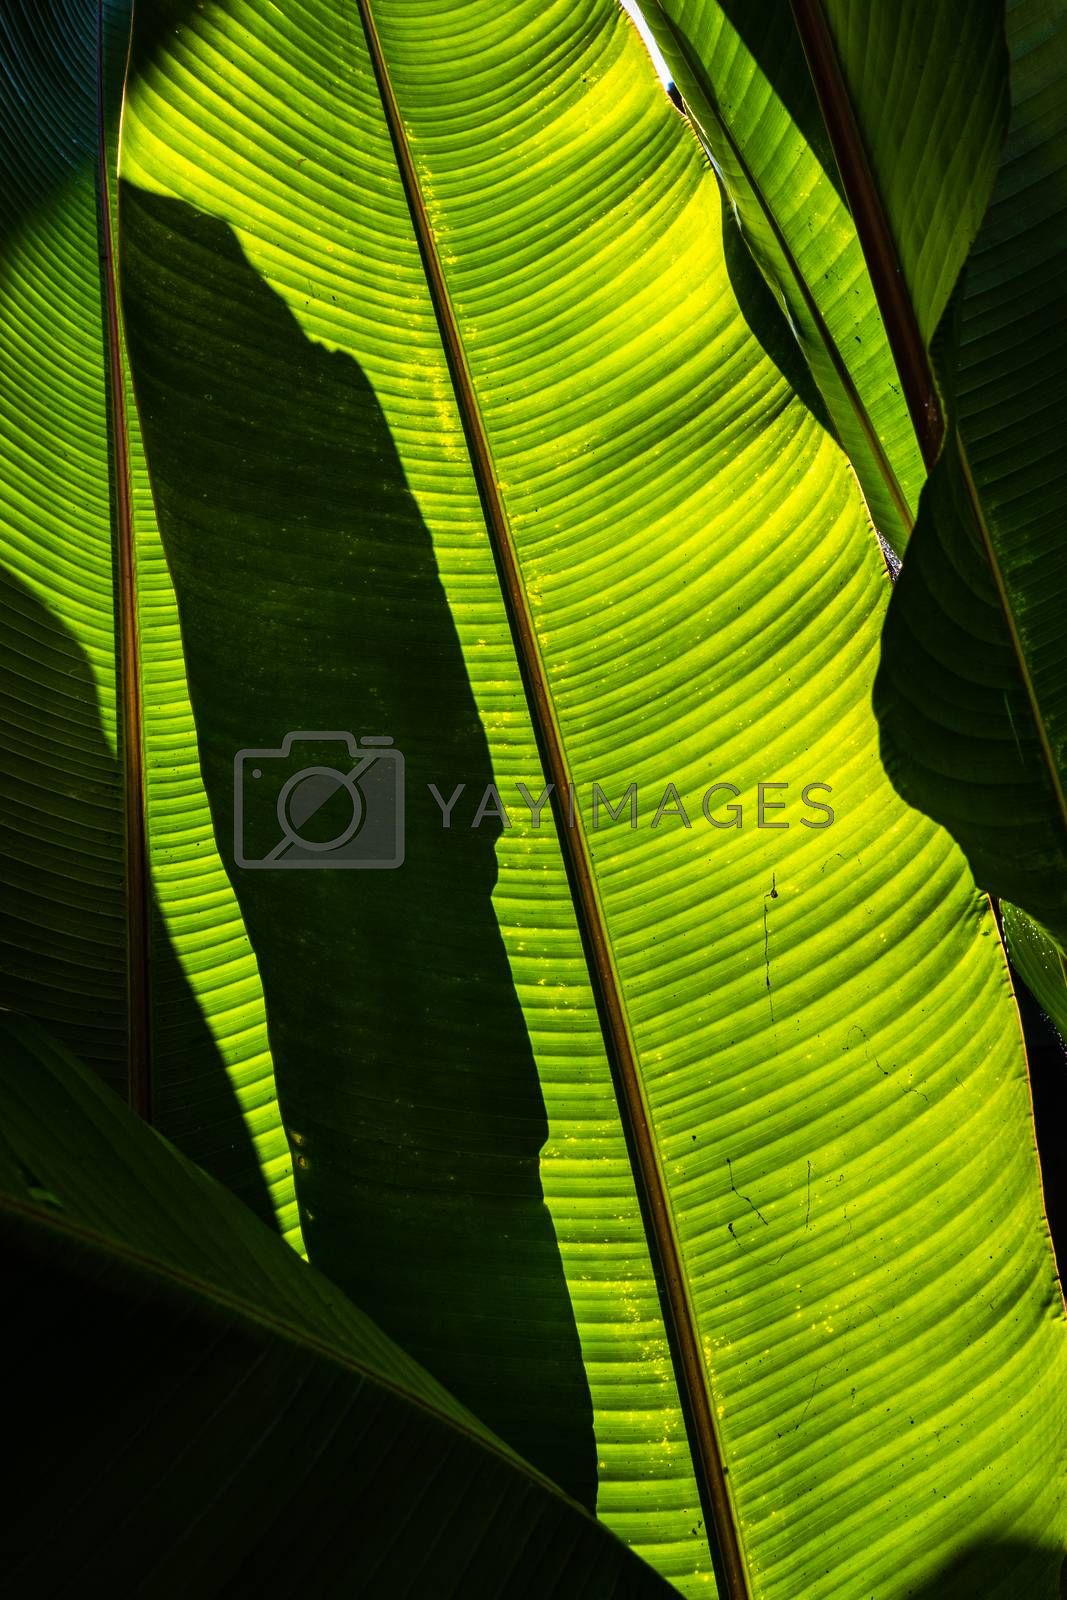 Shadow of banana leaf over its green leaf with clear texture and lines.